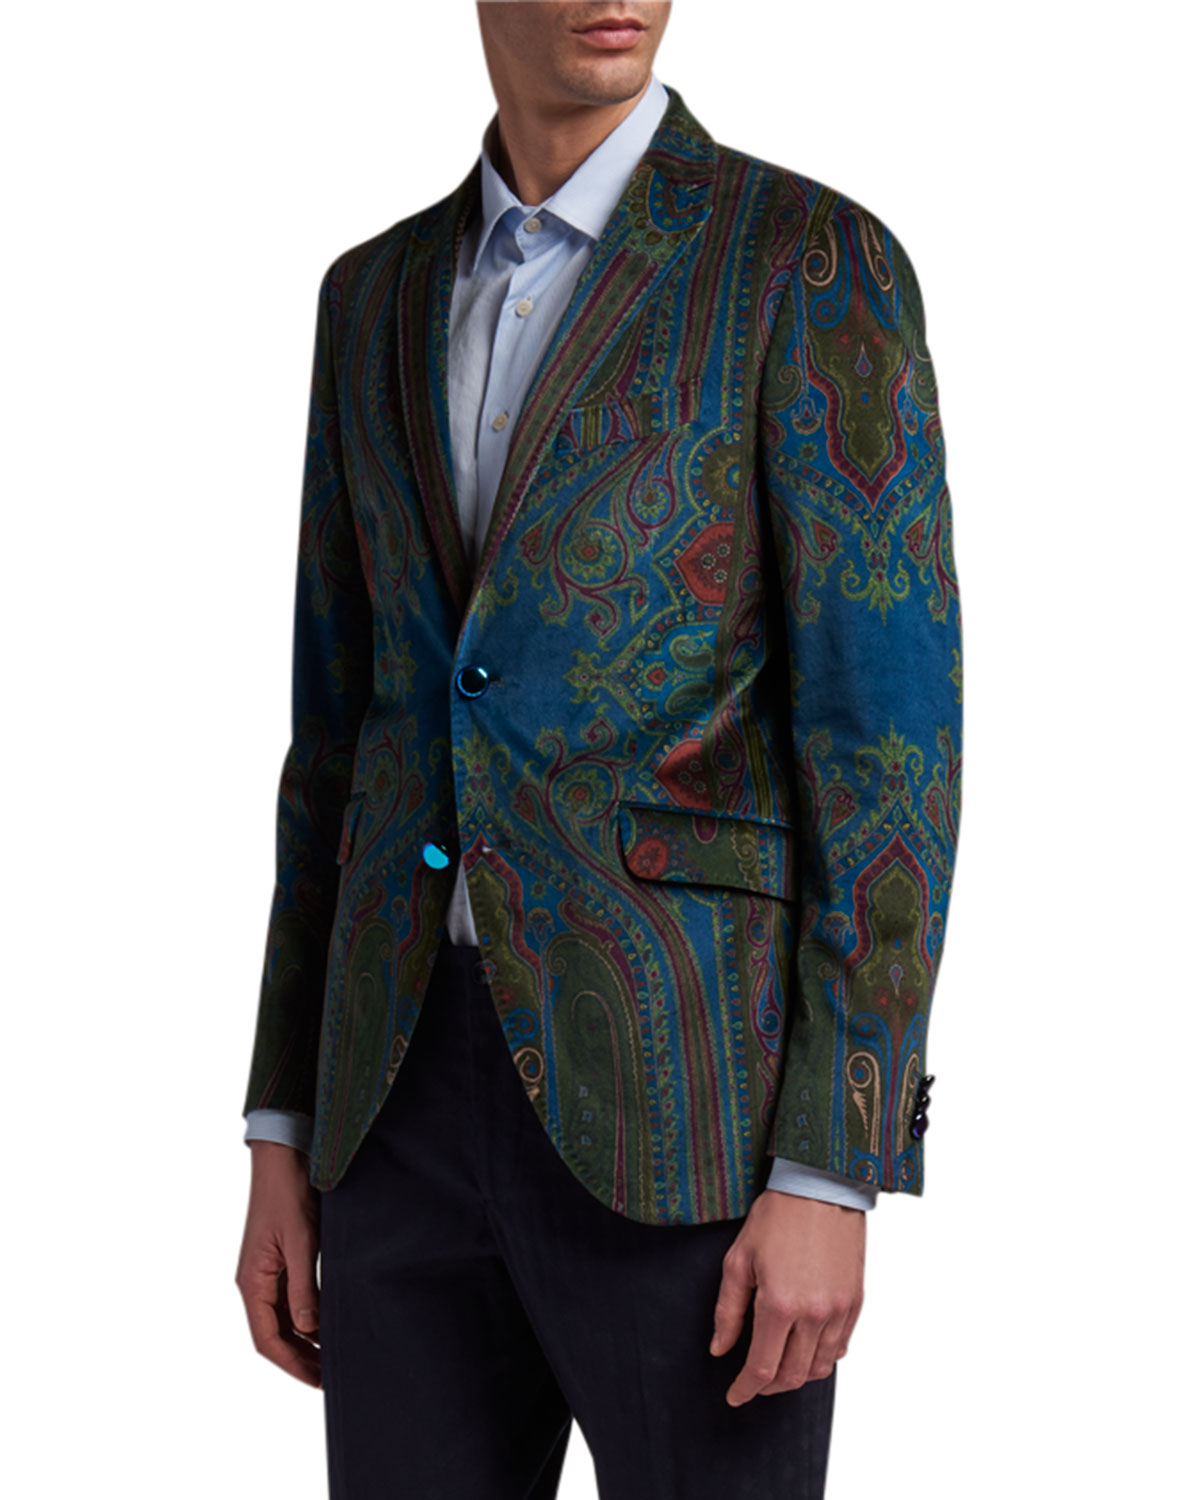 Etro Men's Paisley Placed-Velvet Sport Jacket